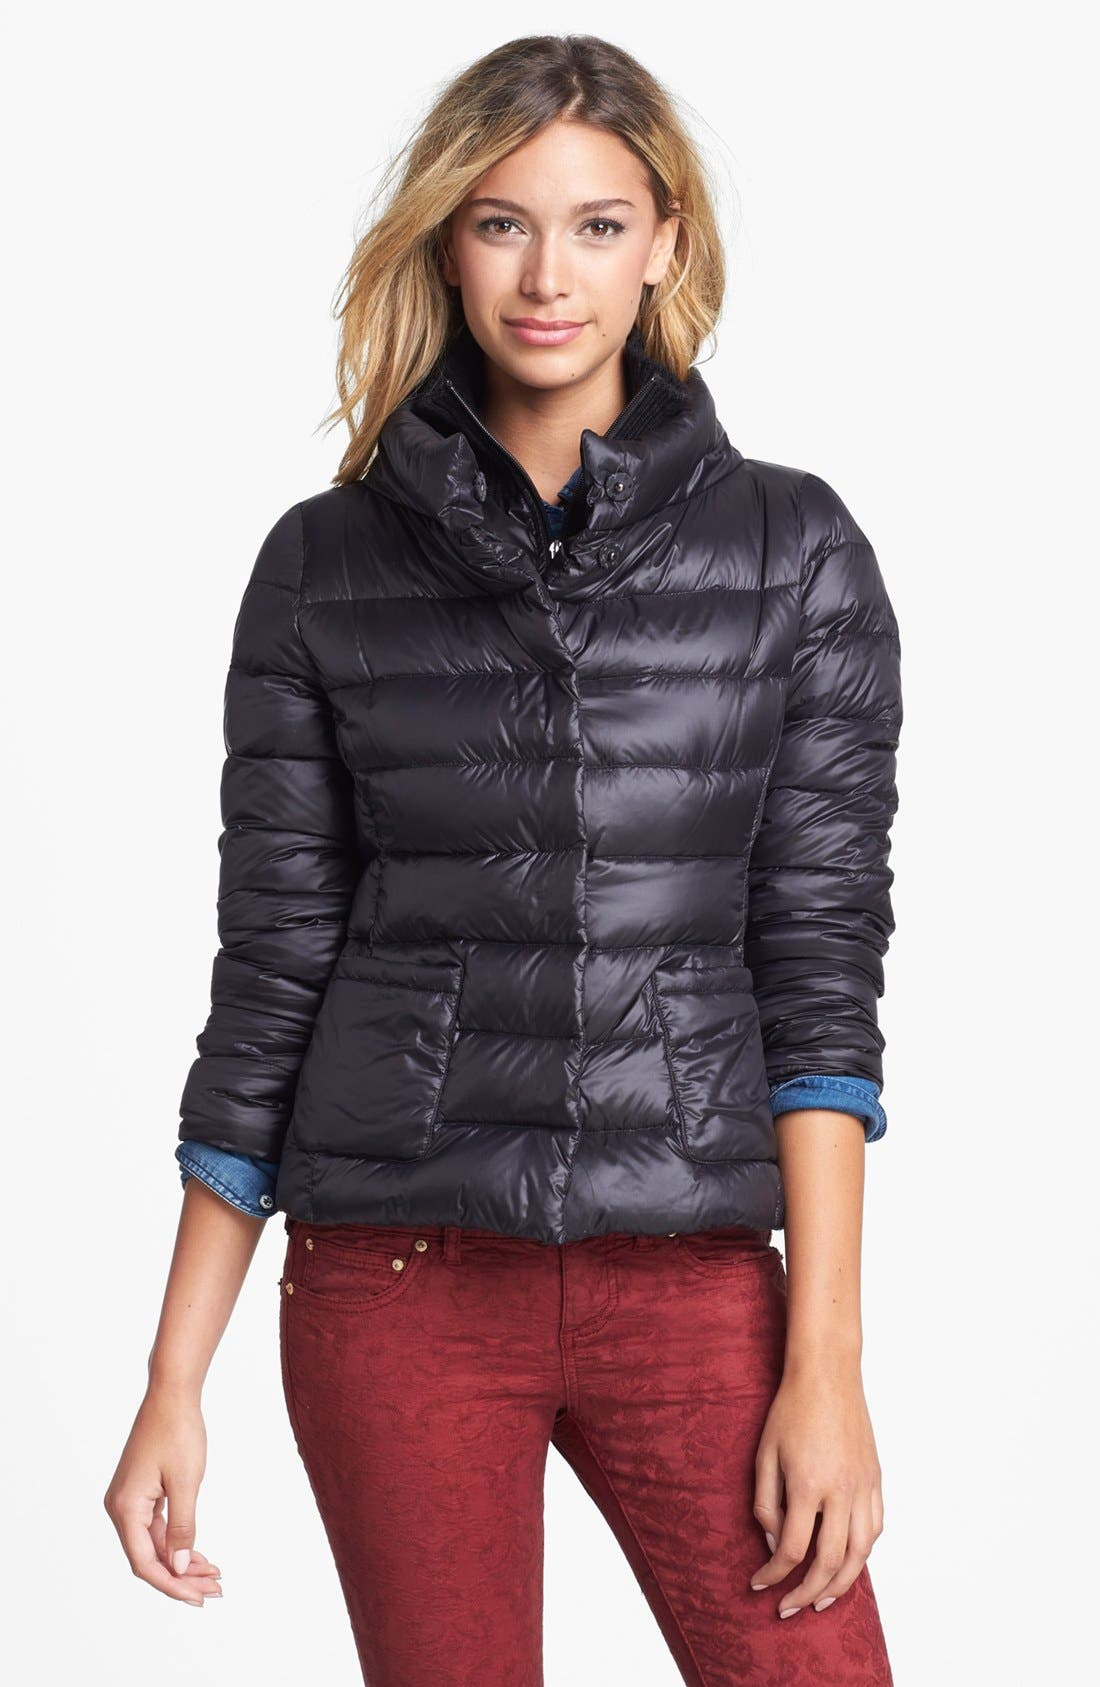 Main Image - T Tahari 'Sandra' Bib Front Packable Quilted Jacket